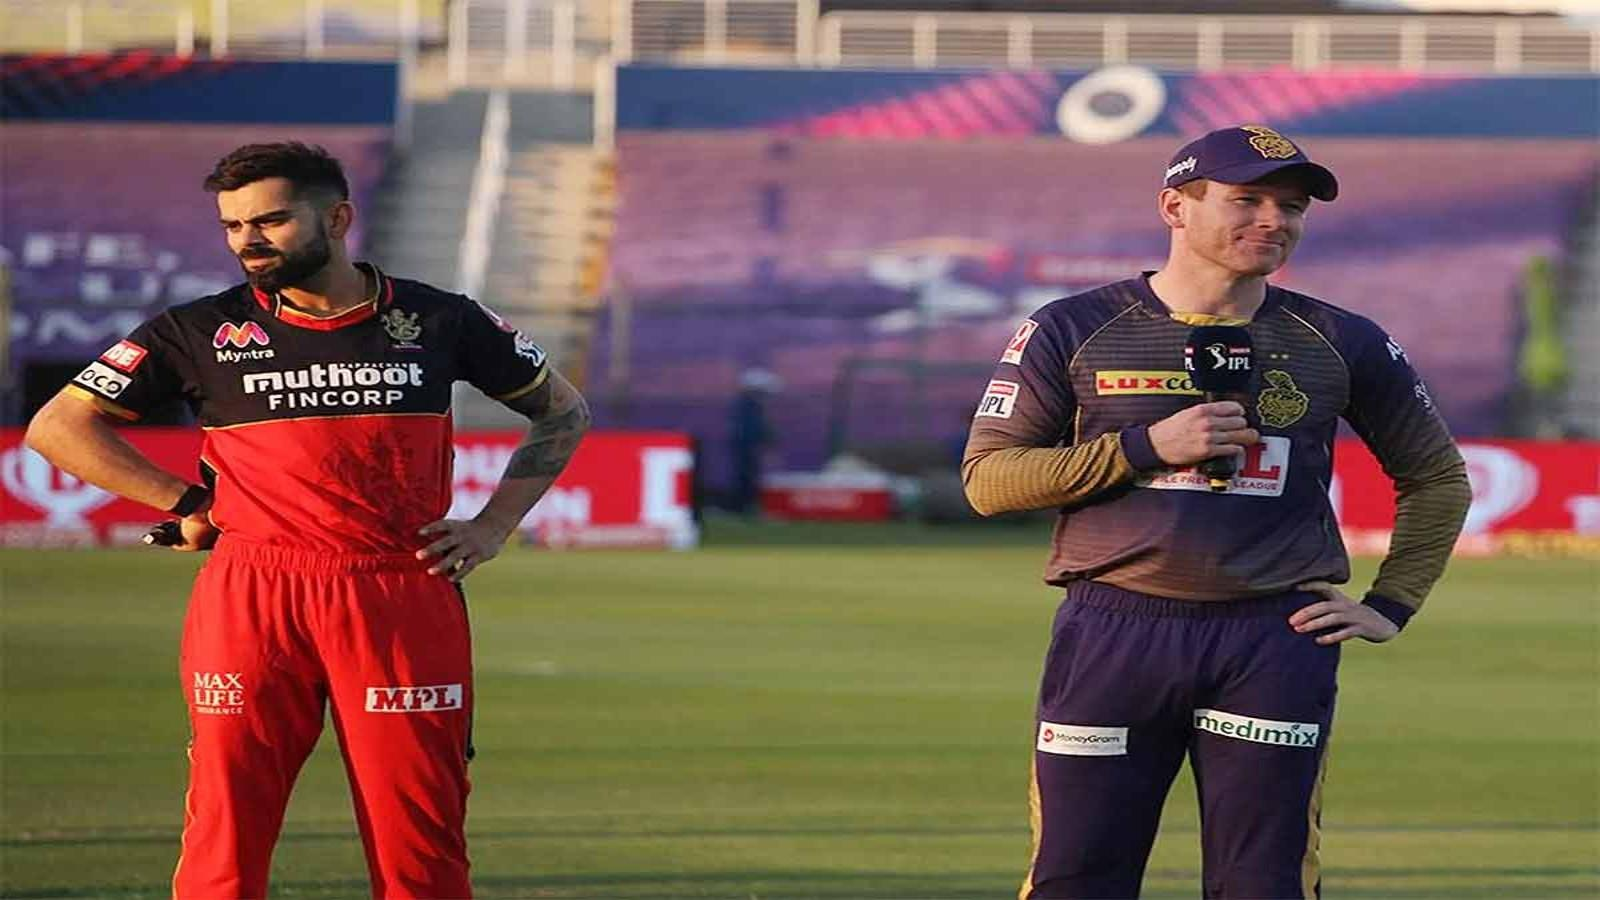 ipl-2021-eoin-morgan-and-virat-kohli-get-ready-to-face-off-in-rcb-vs-kkr-match